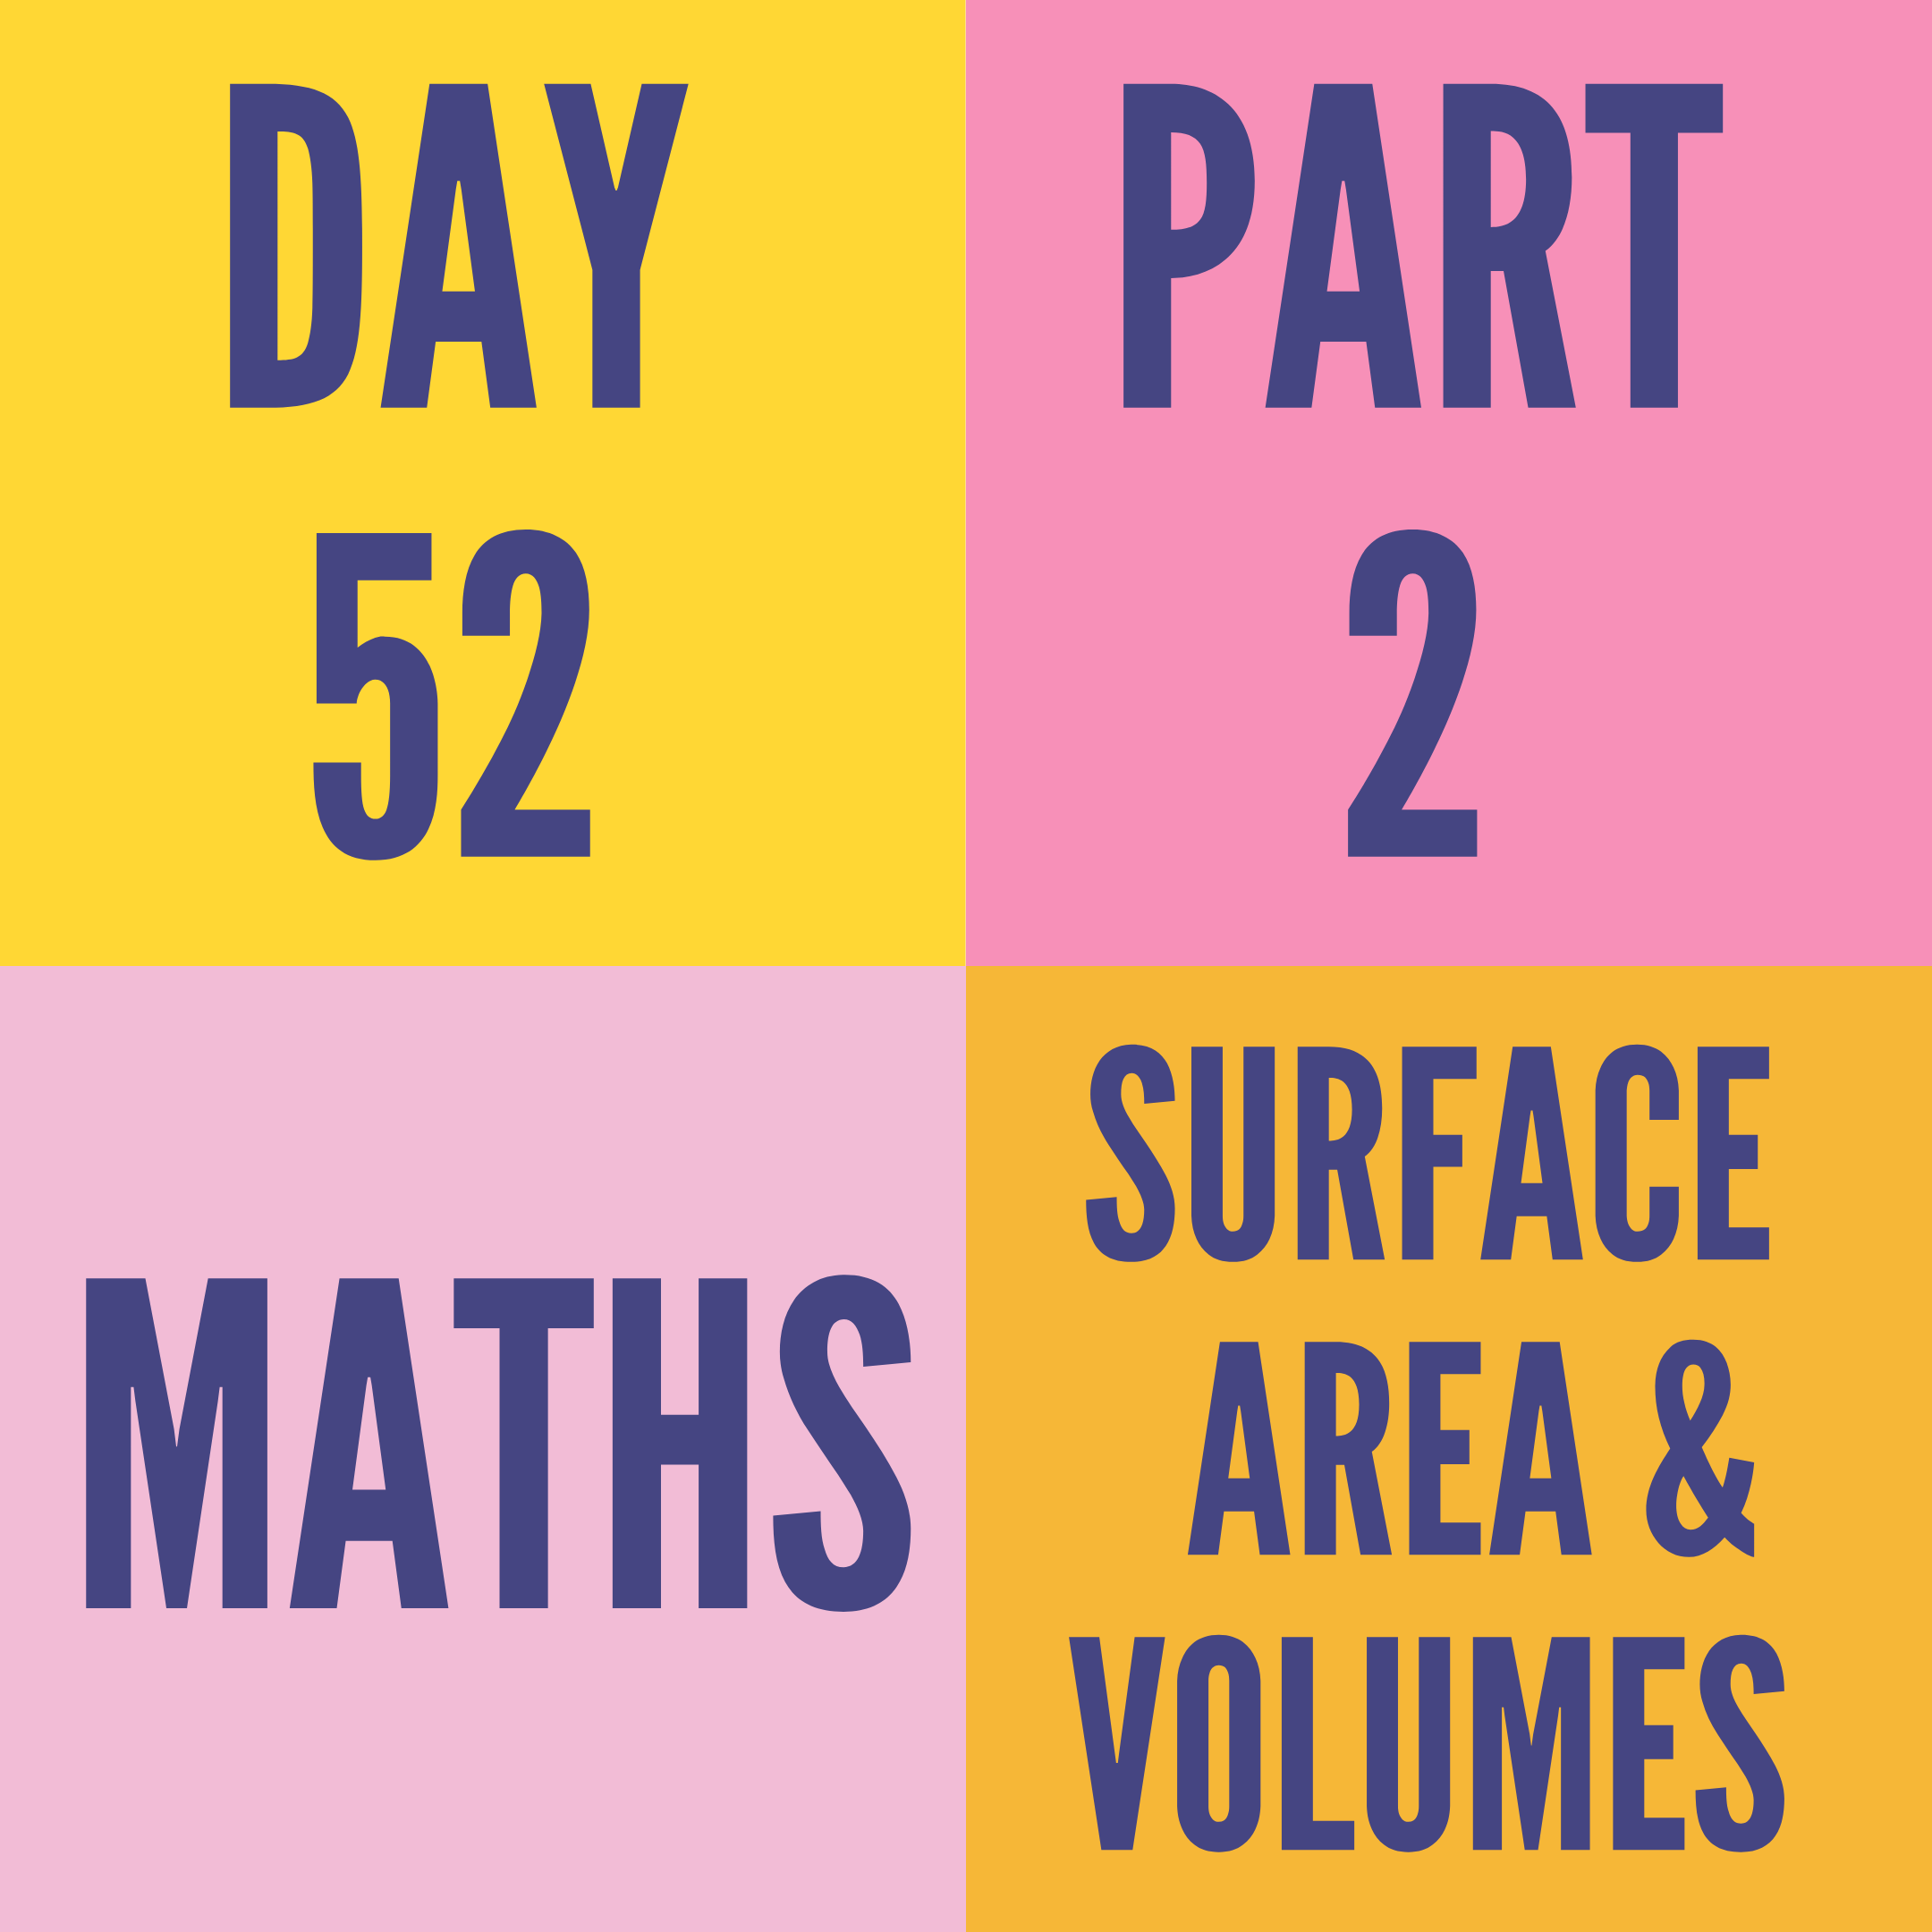 DAY-52 PART-2 SURFACE AREA & VOLUMES